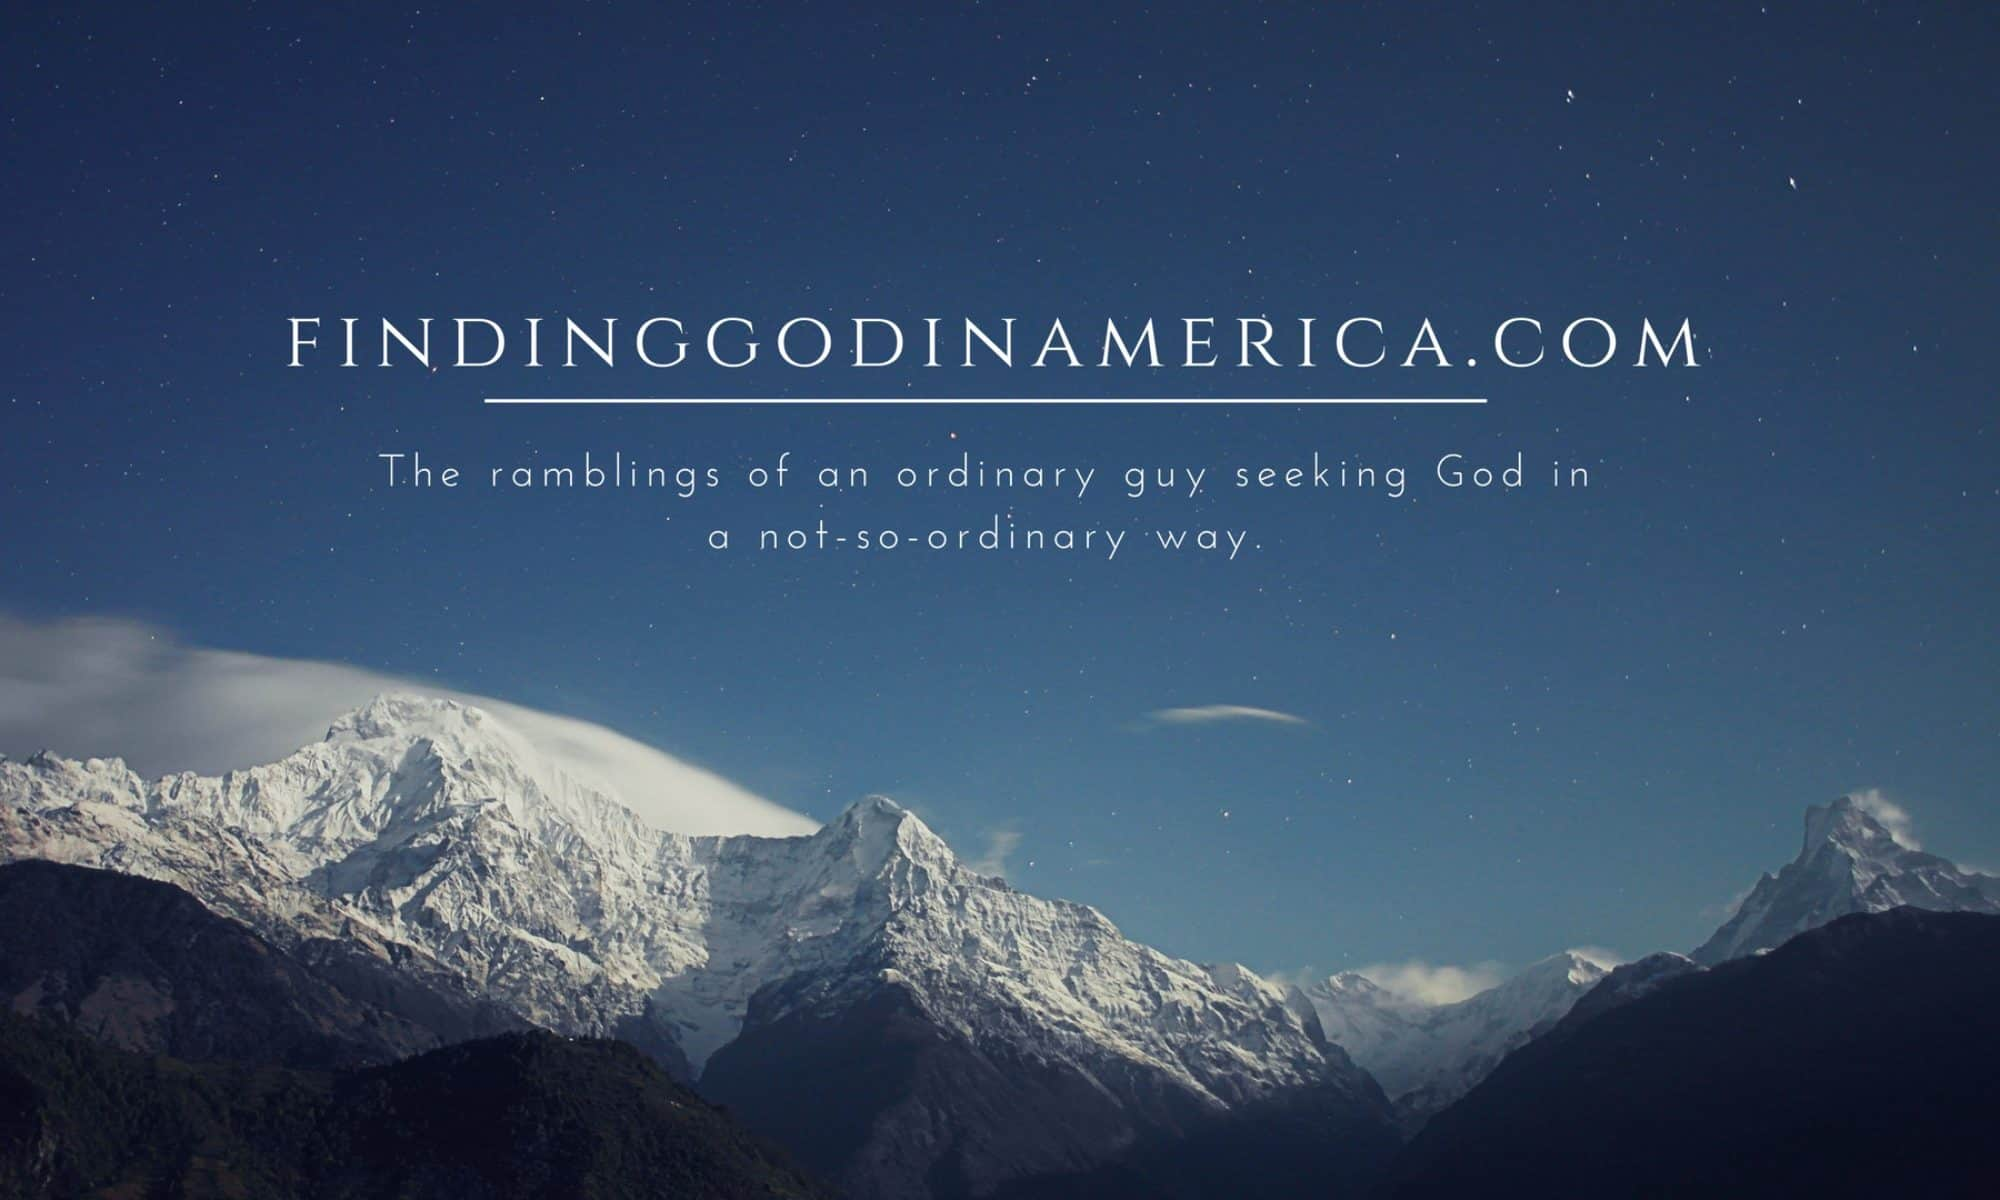 Finding God in America